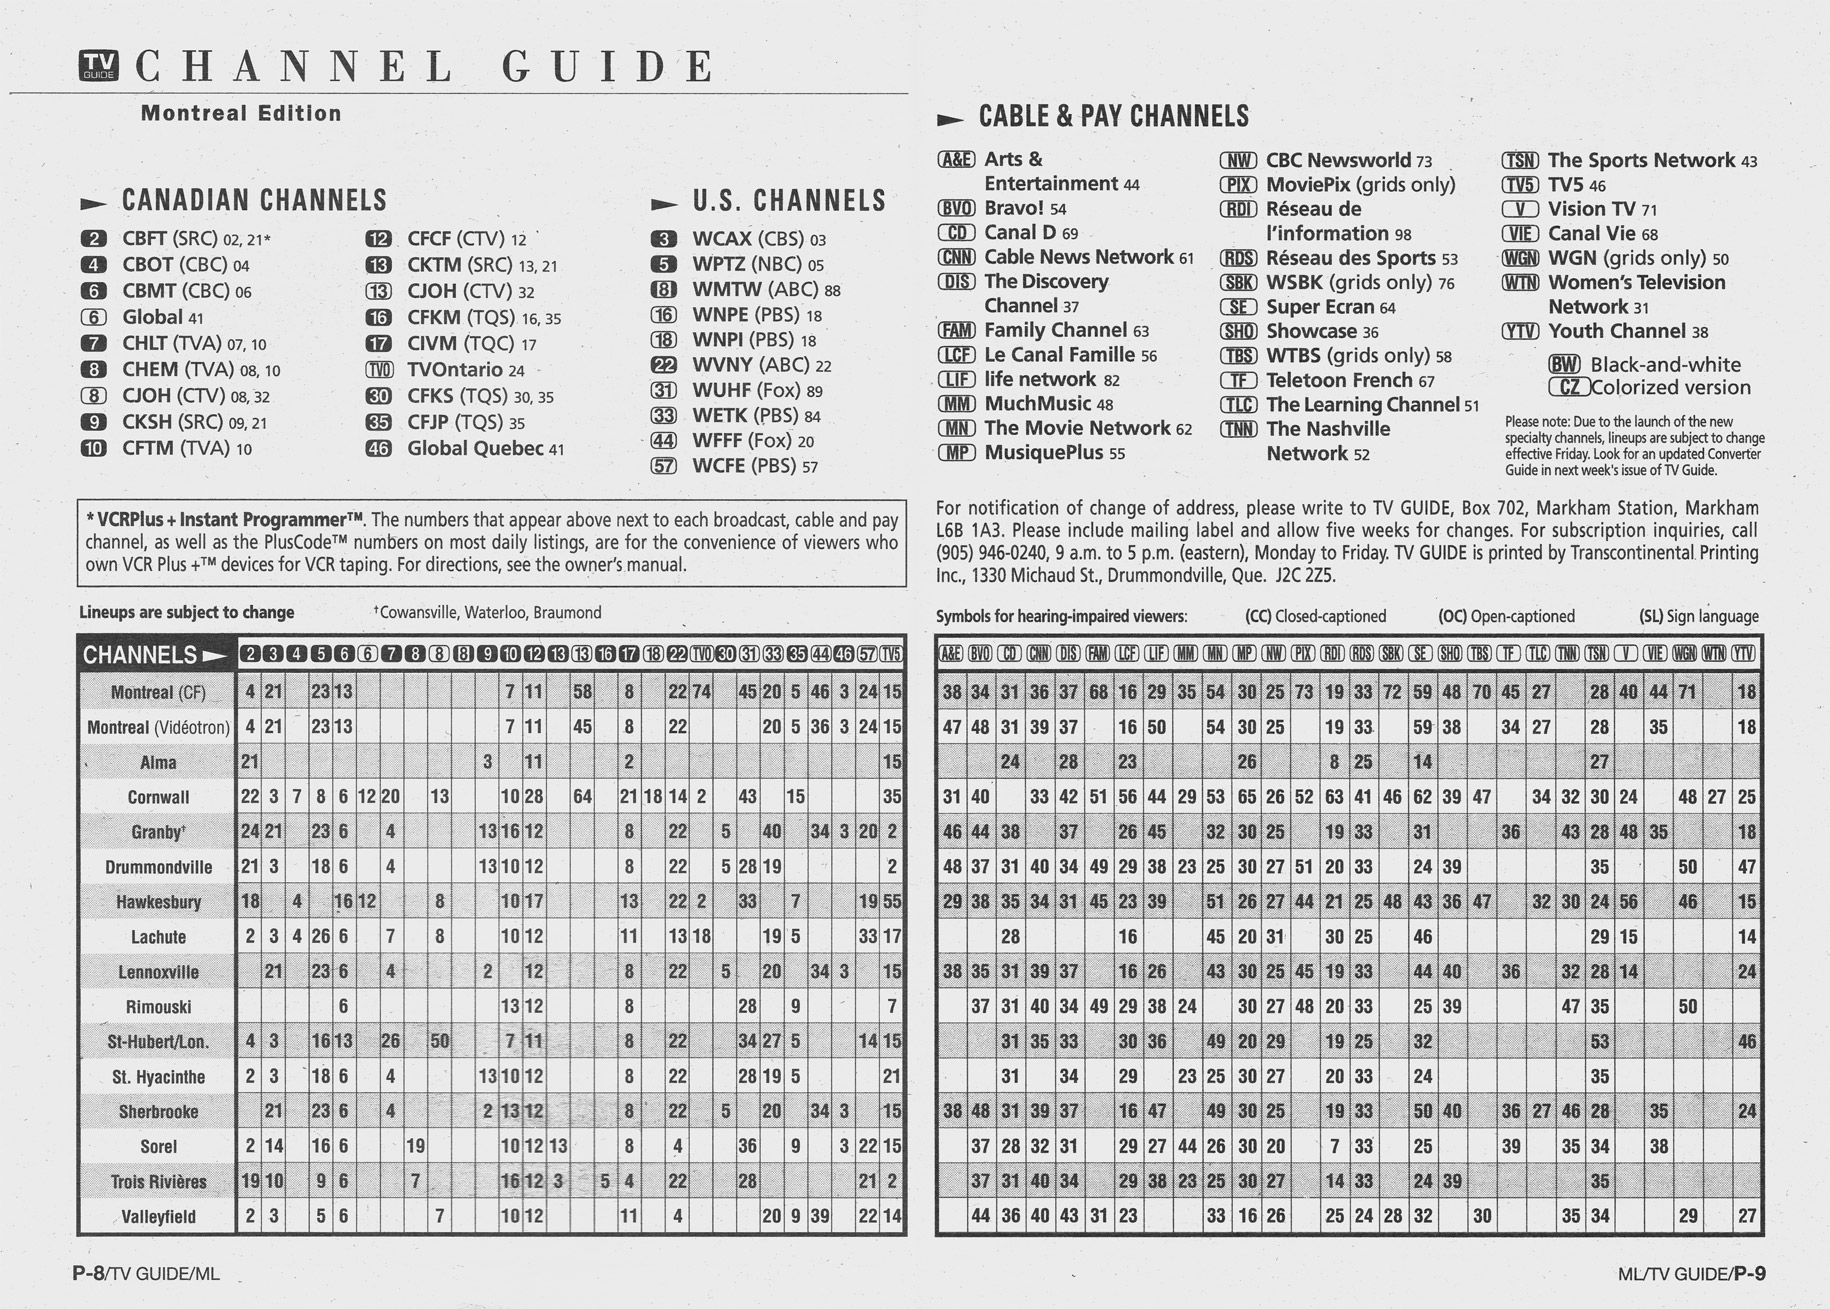 vintage channel guide from montreal edition of tv guide october 25 1997